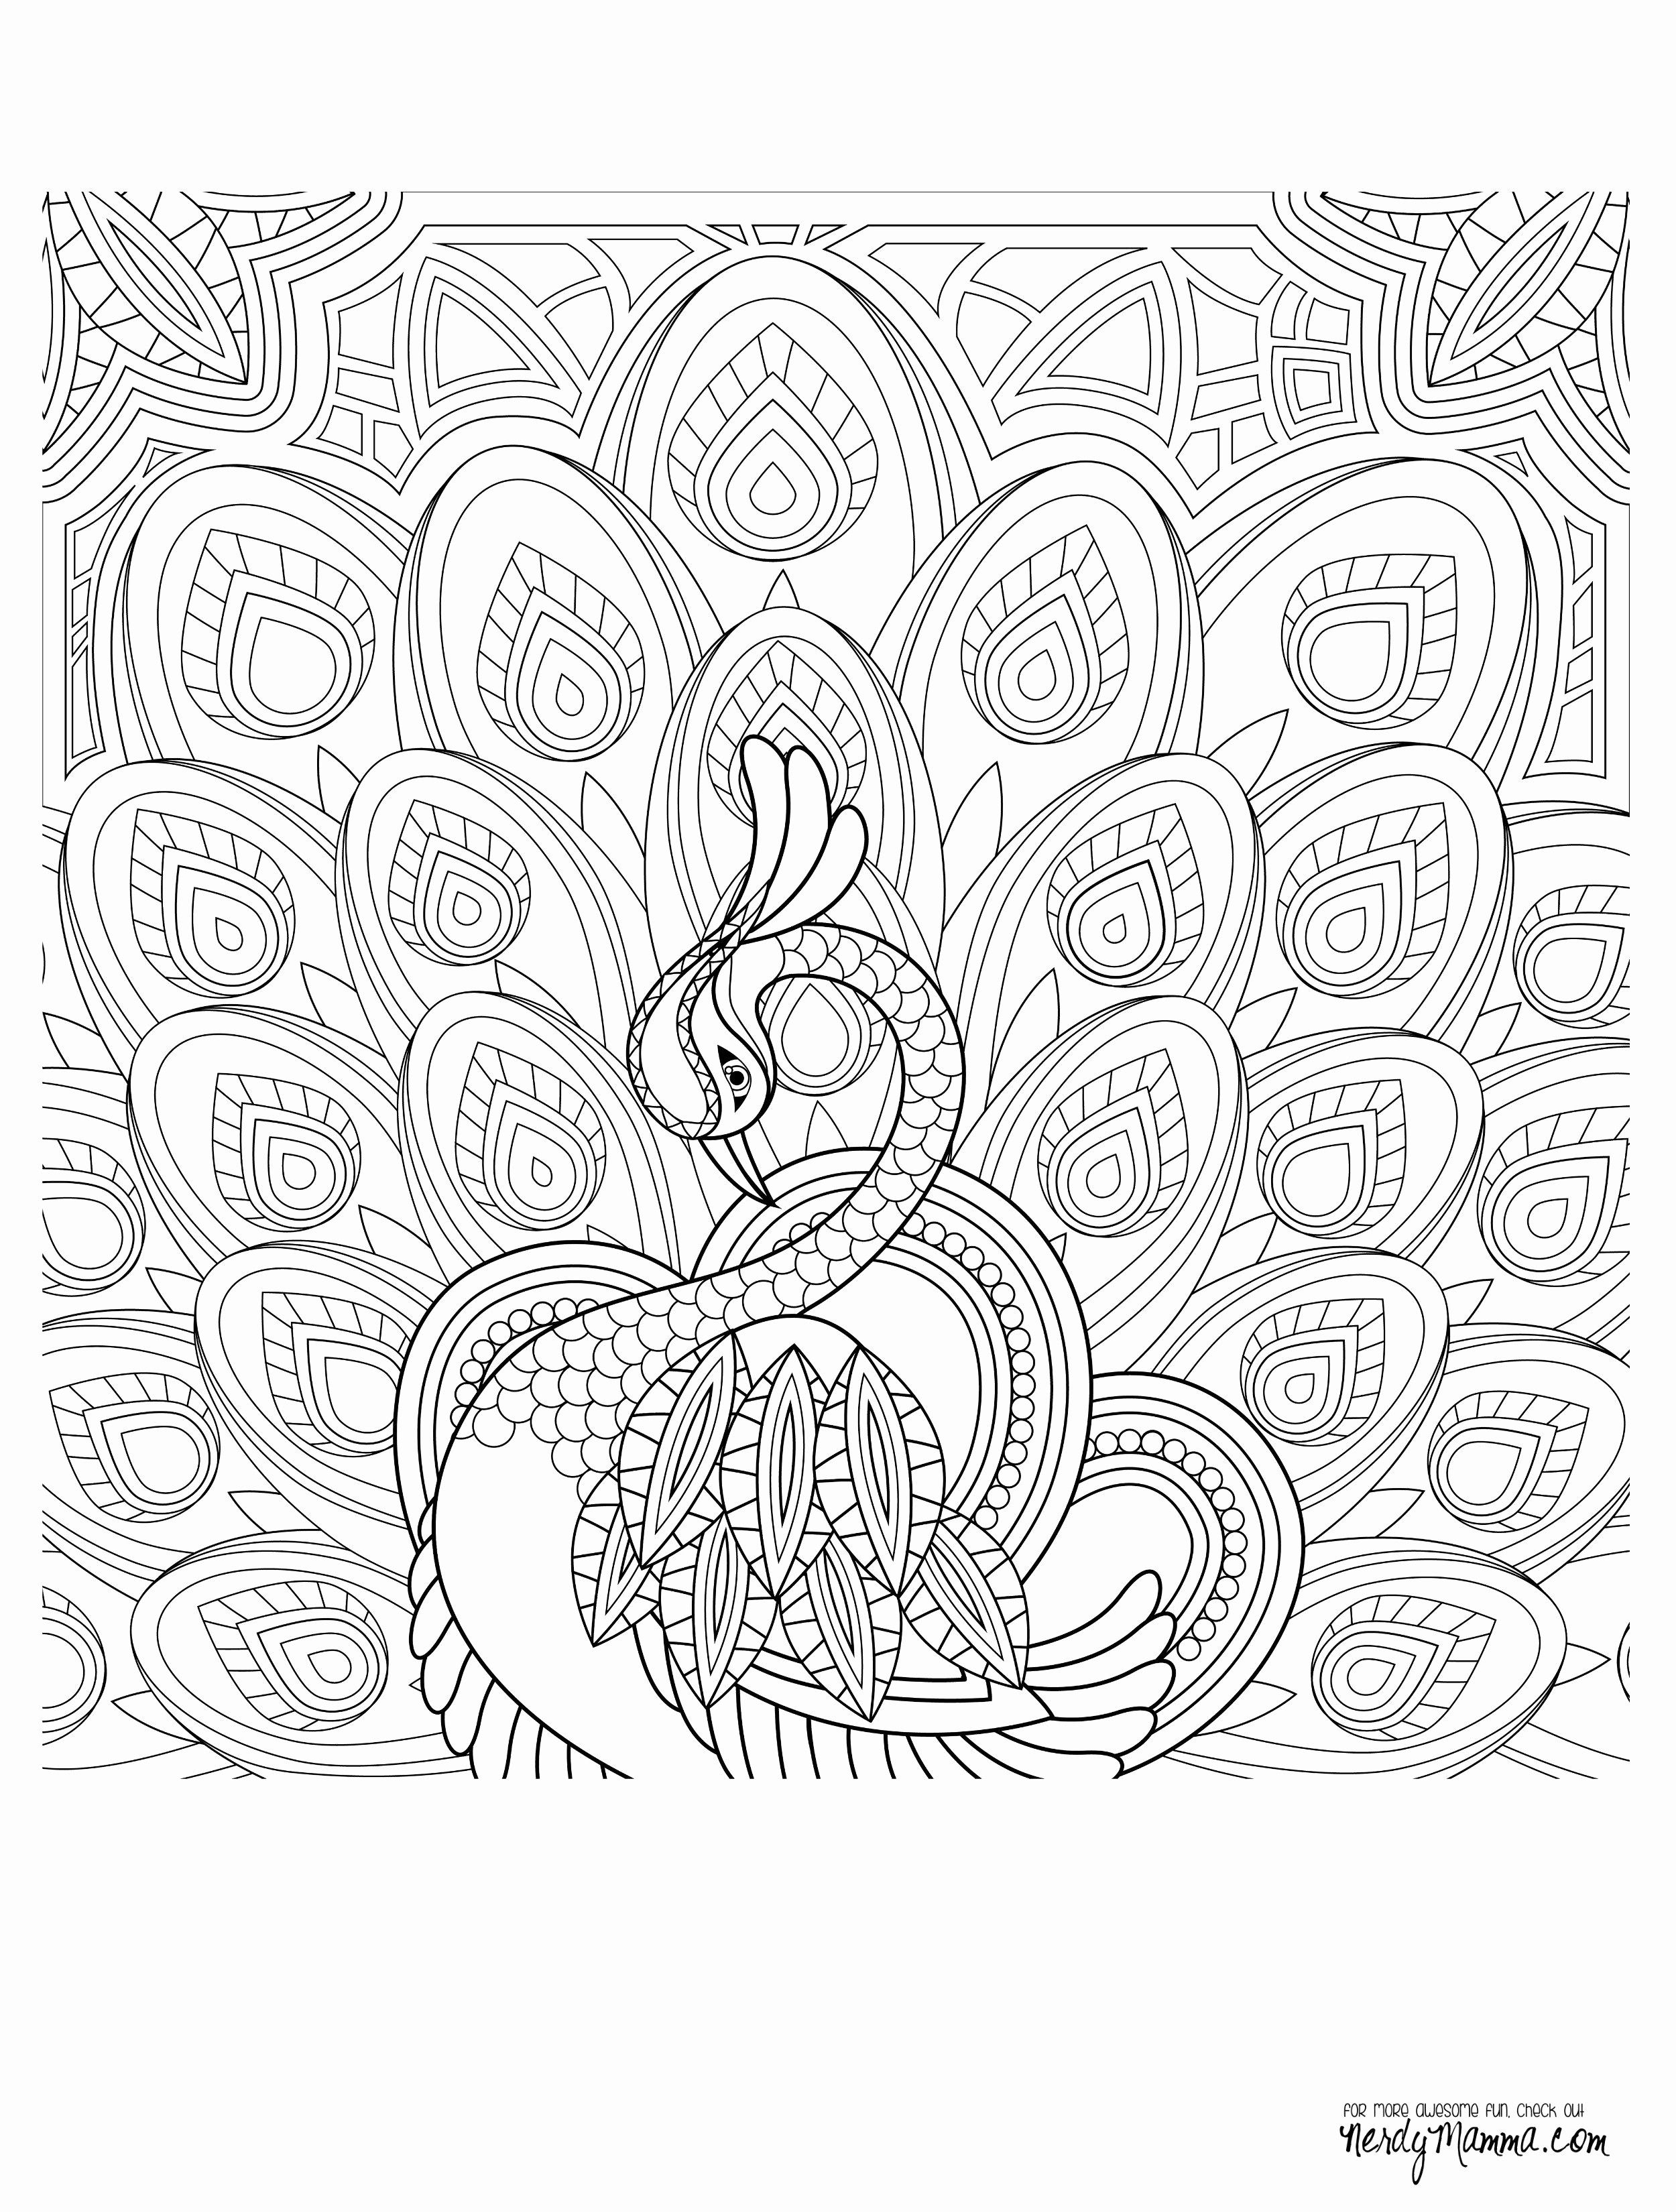 mandala art coloring pages Collection-Free Printable Coloring Pages For Adults Best Awesome Coloring Page For Adult Od Kids Simple Floral Heart With 12-j